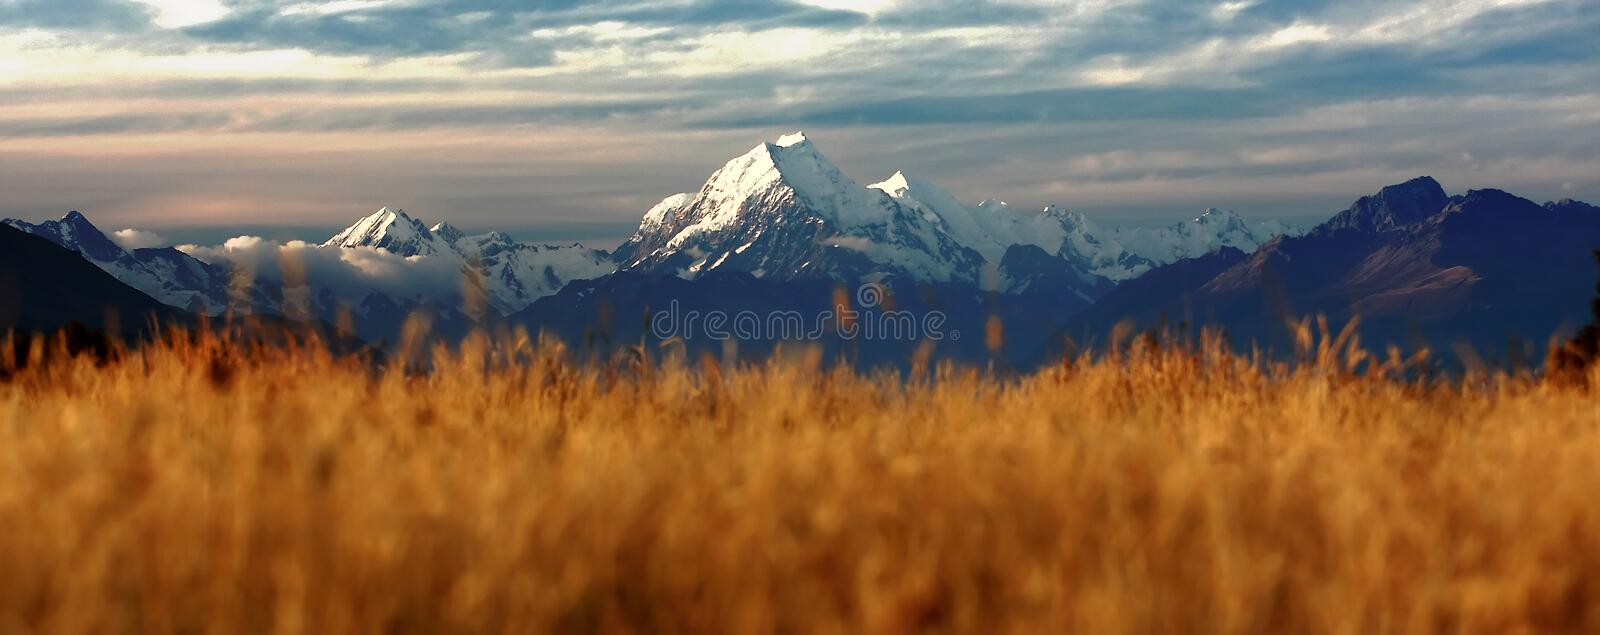 Download The Peak of Mount Cook stock photo. Image of grassy, landscape - 24868452